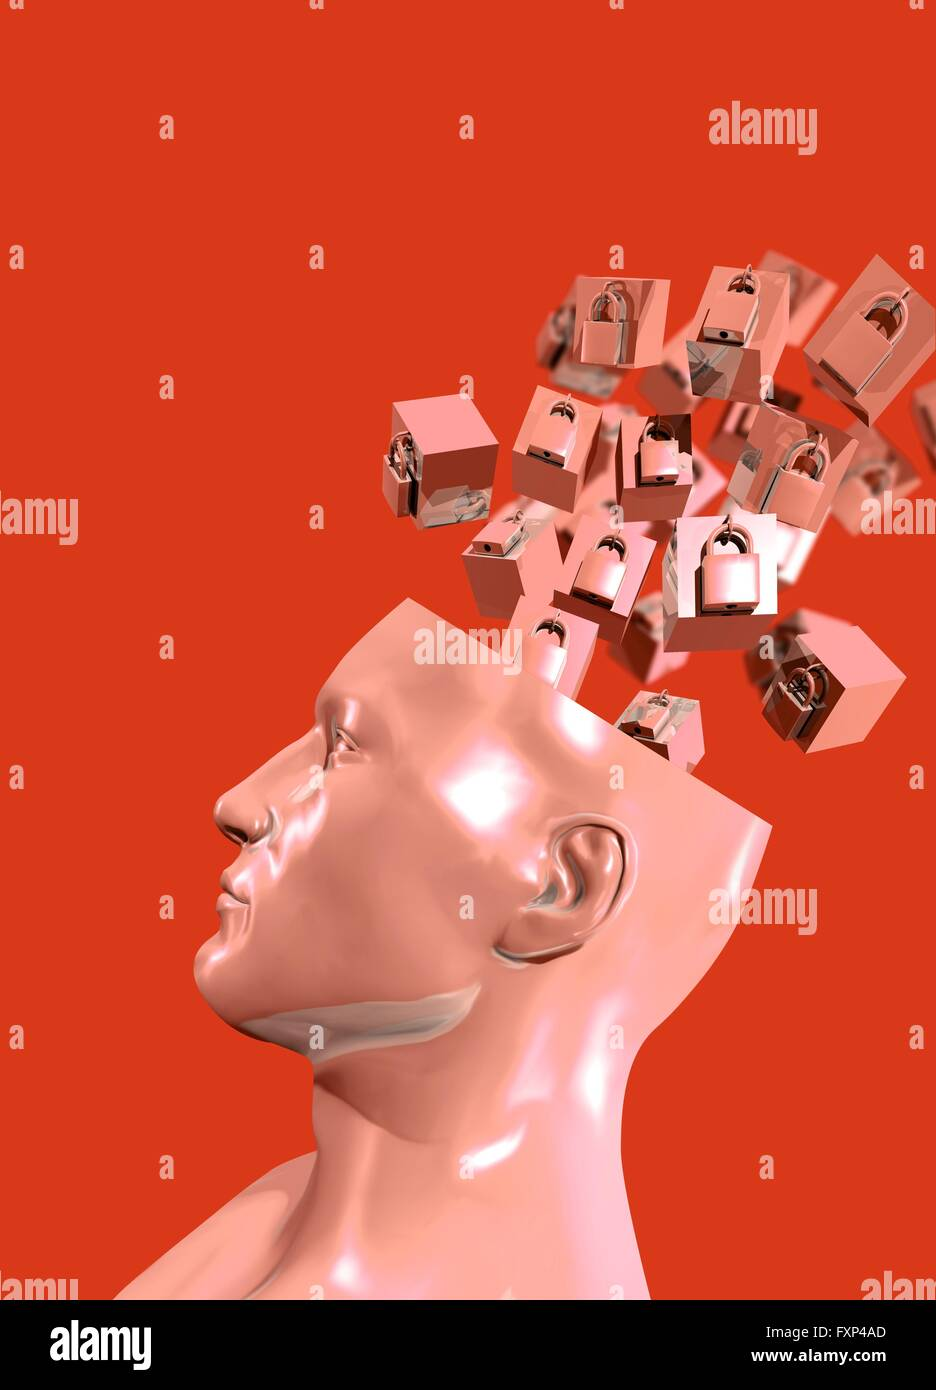 The secrets of the mind, conceptual illustration. - Stock Image